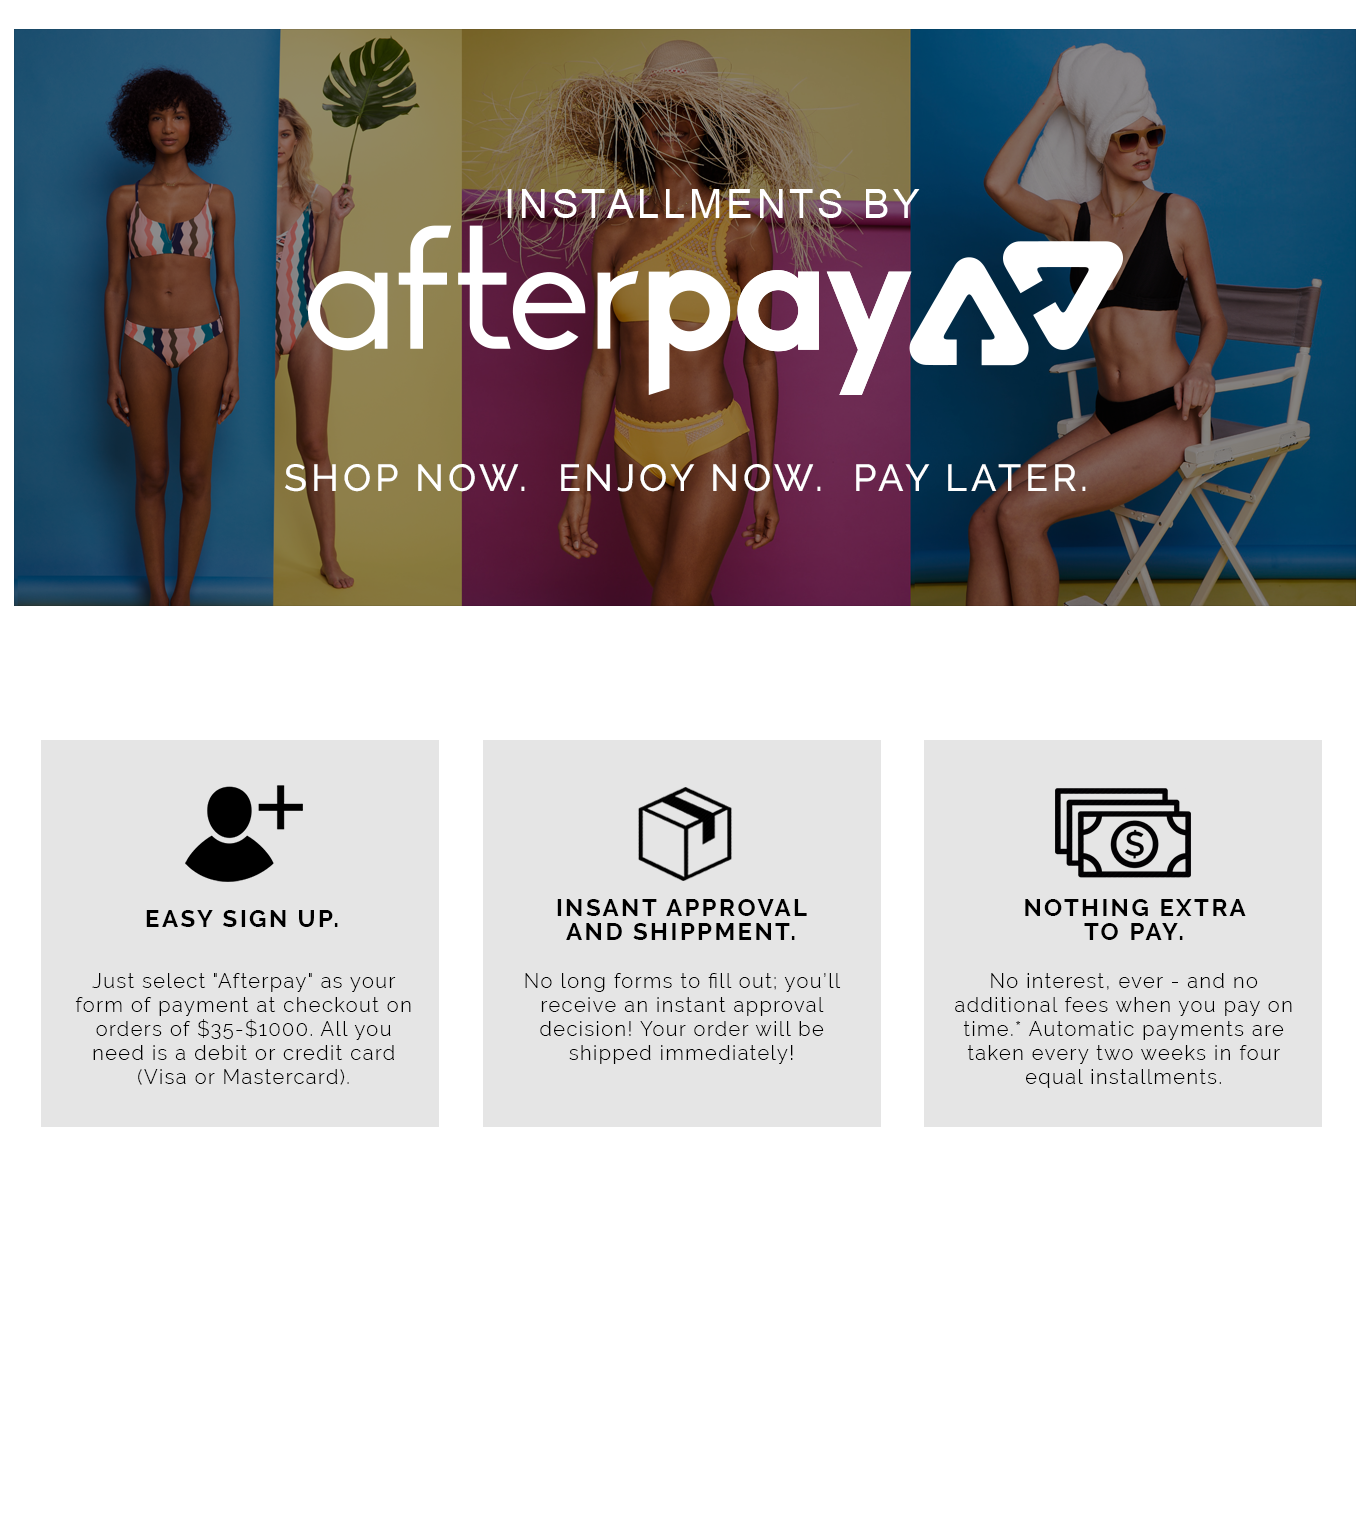 afterpay1-5e86310d-9761-4ae6-992f-b3d9d8f9d203.png